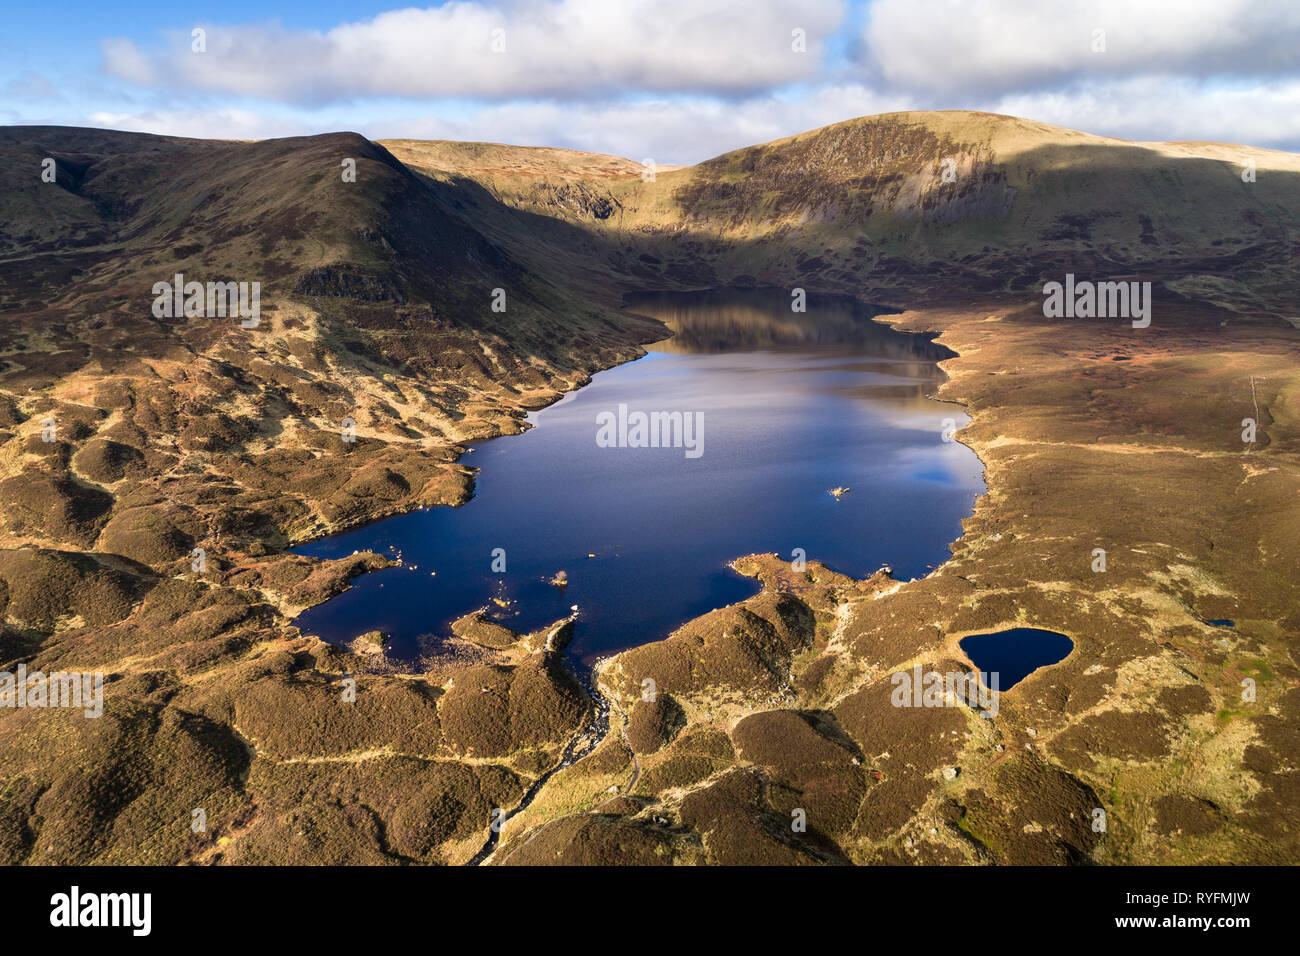 Aerial image looking north across Loch Skeen towards Molls Dod Cleuch. - Stock Image